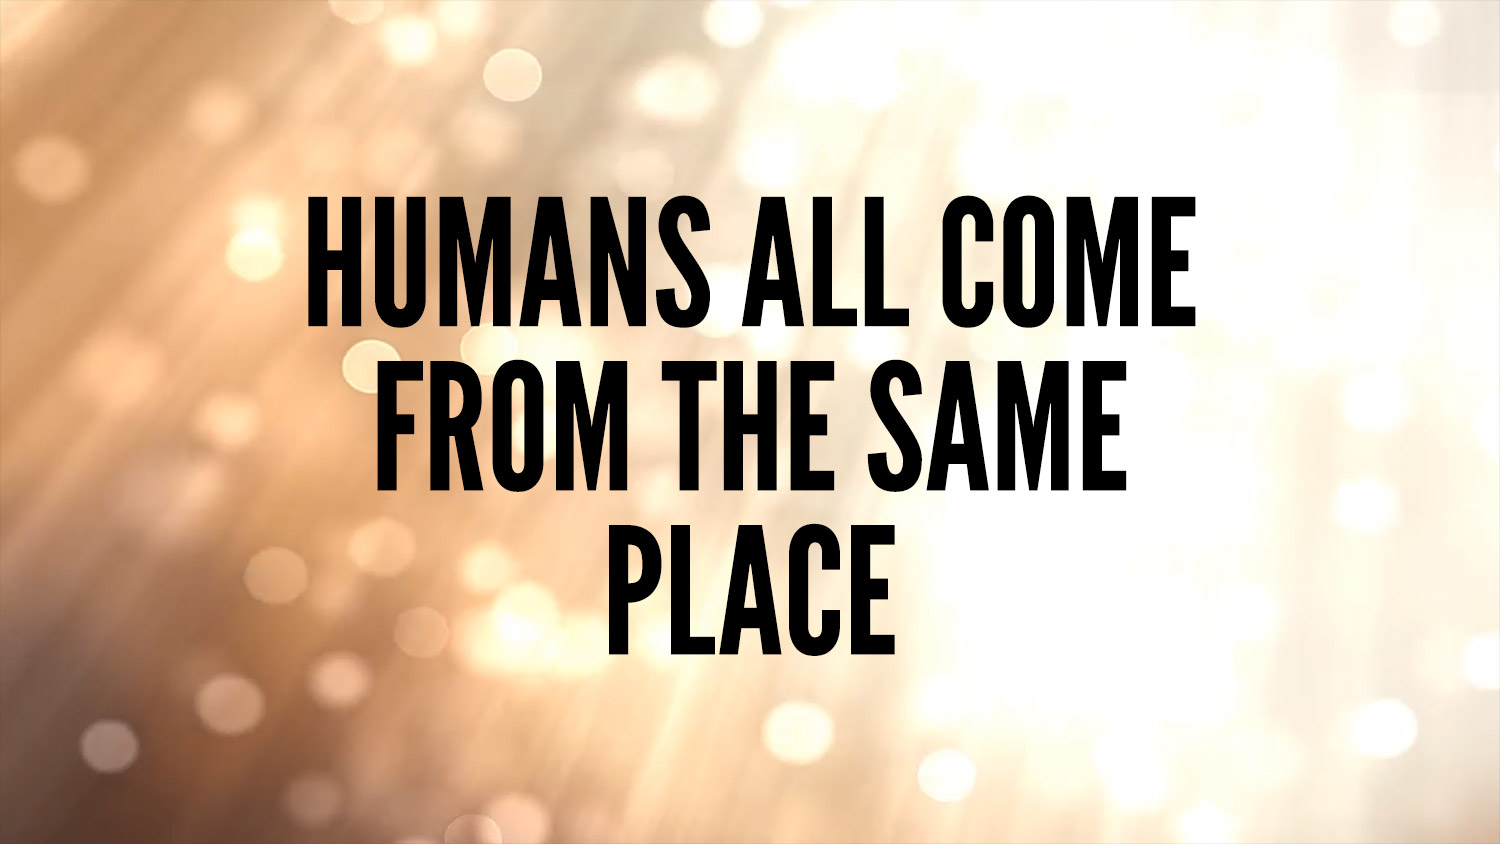 humans all come from the same place